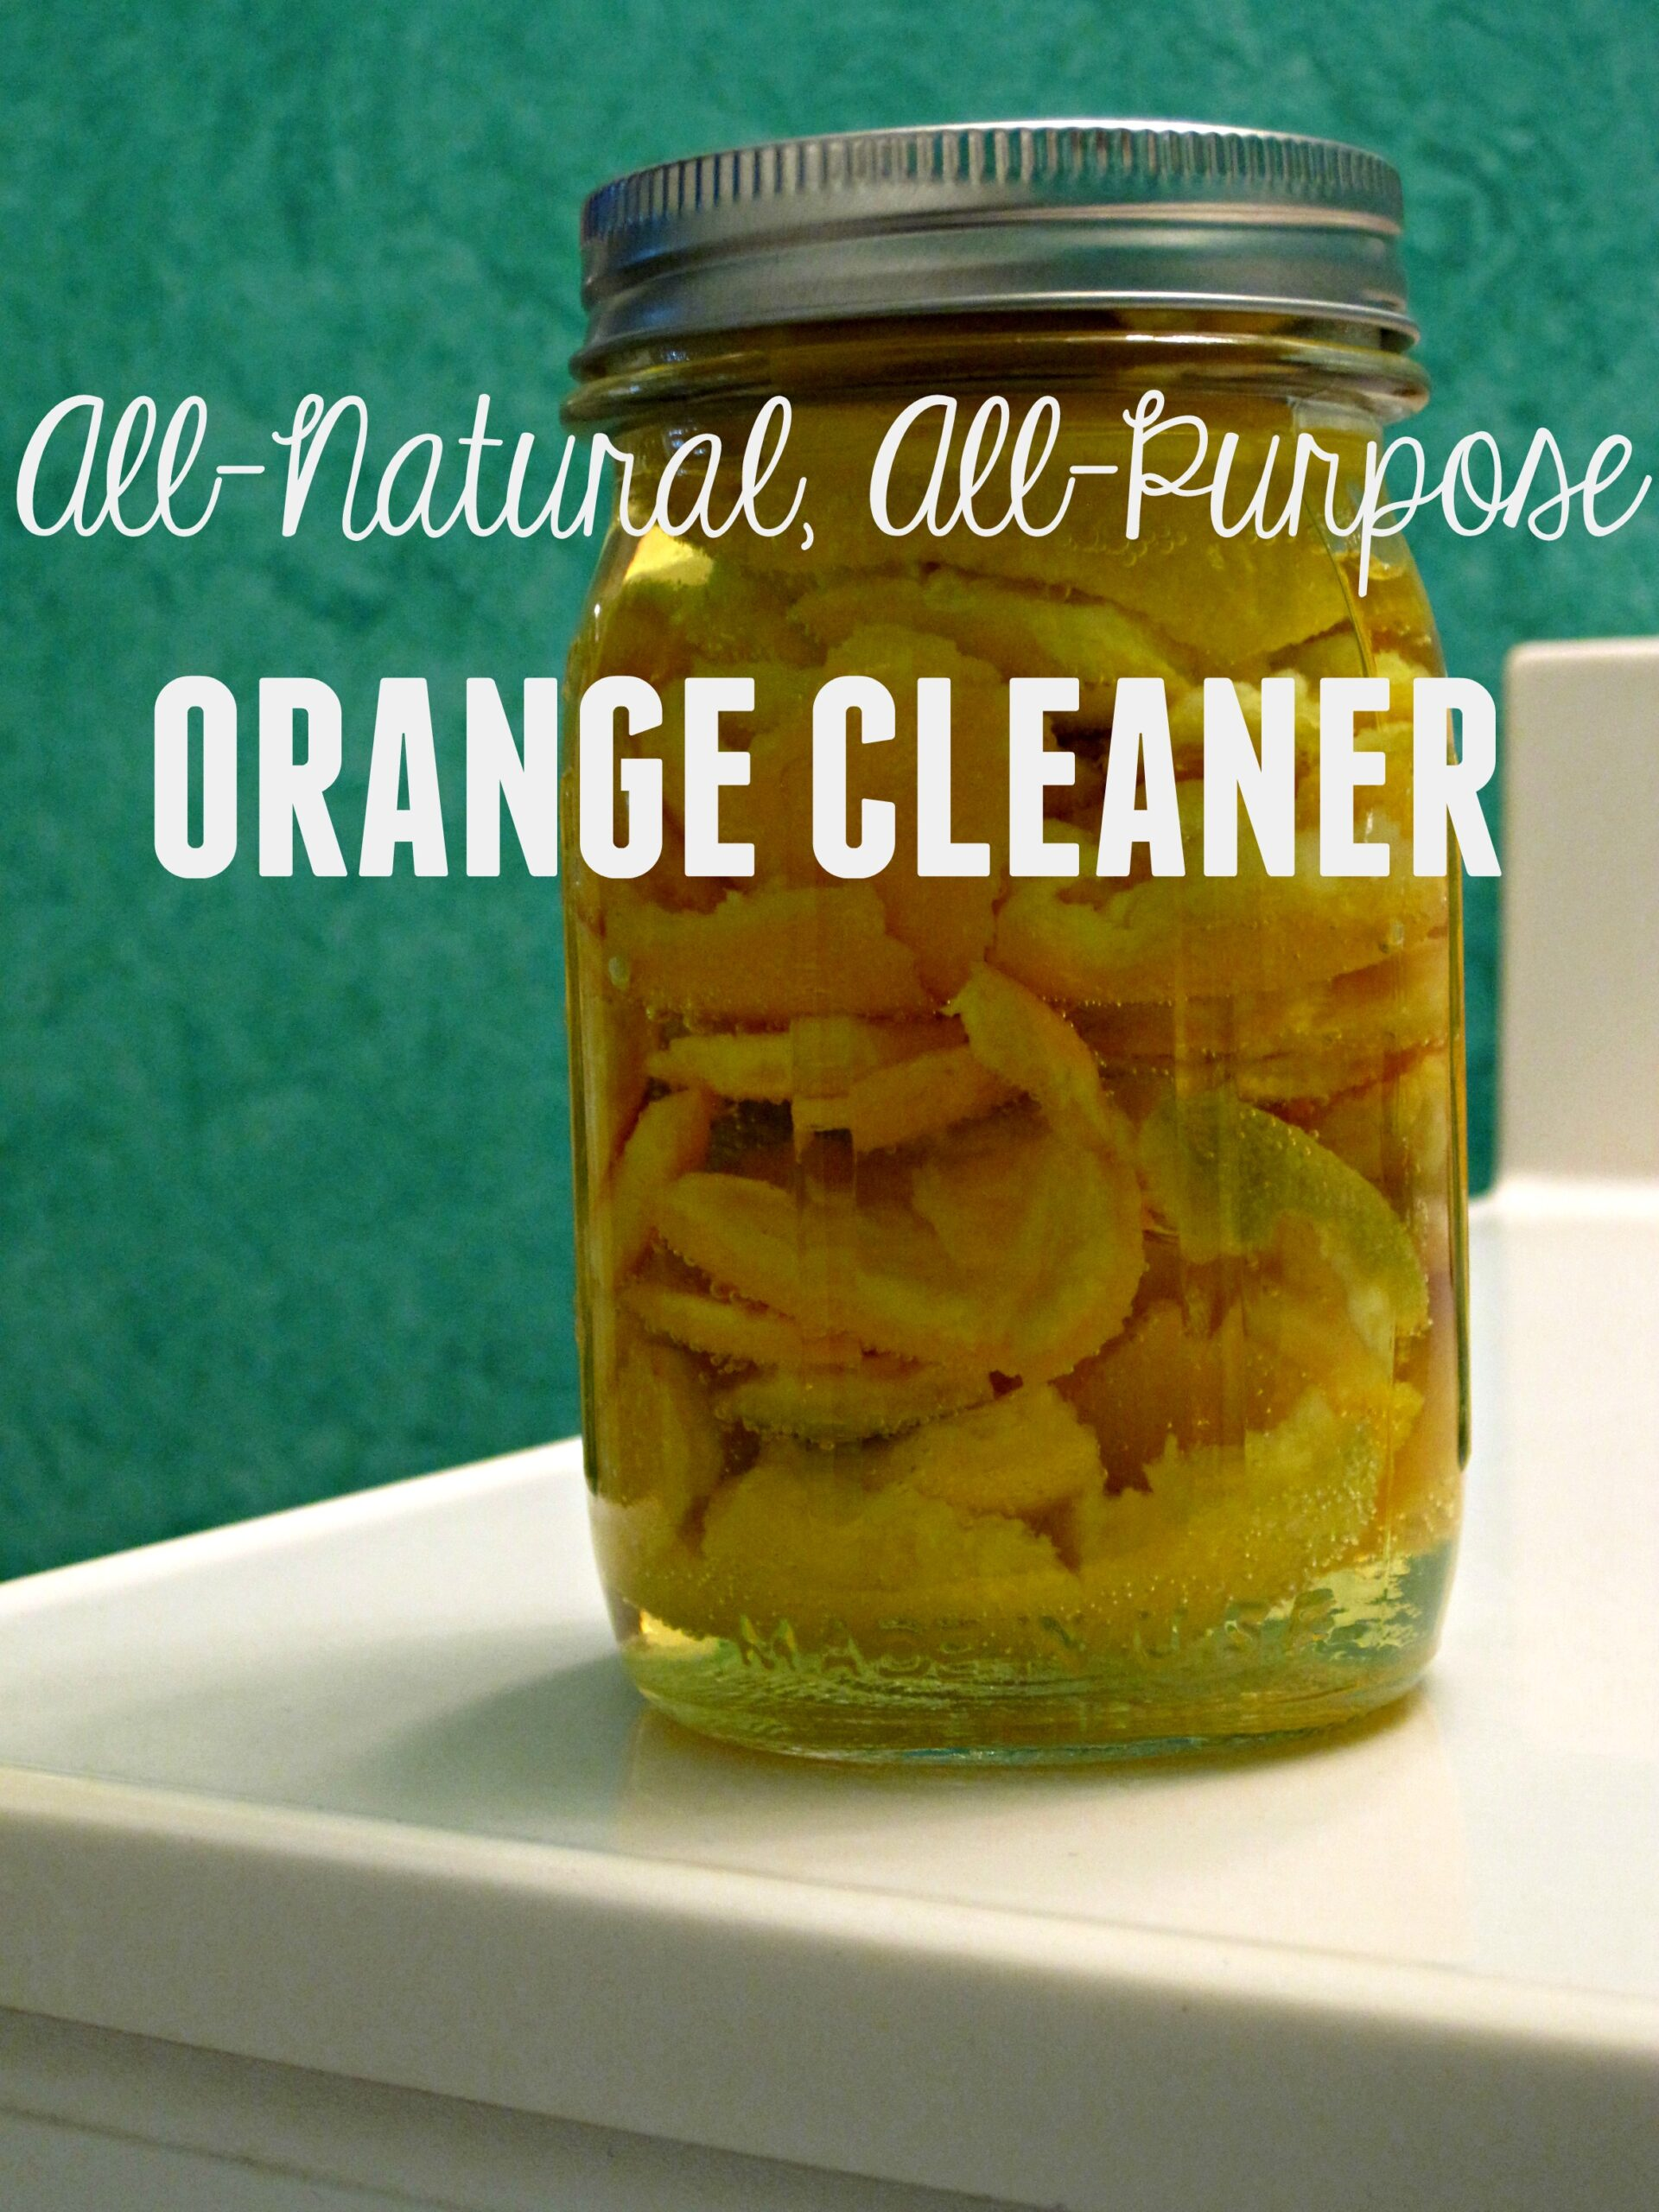 My All-Purpose, All-Natural Daily Cleaner